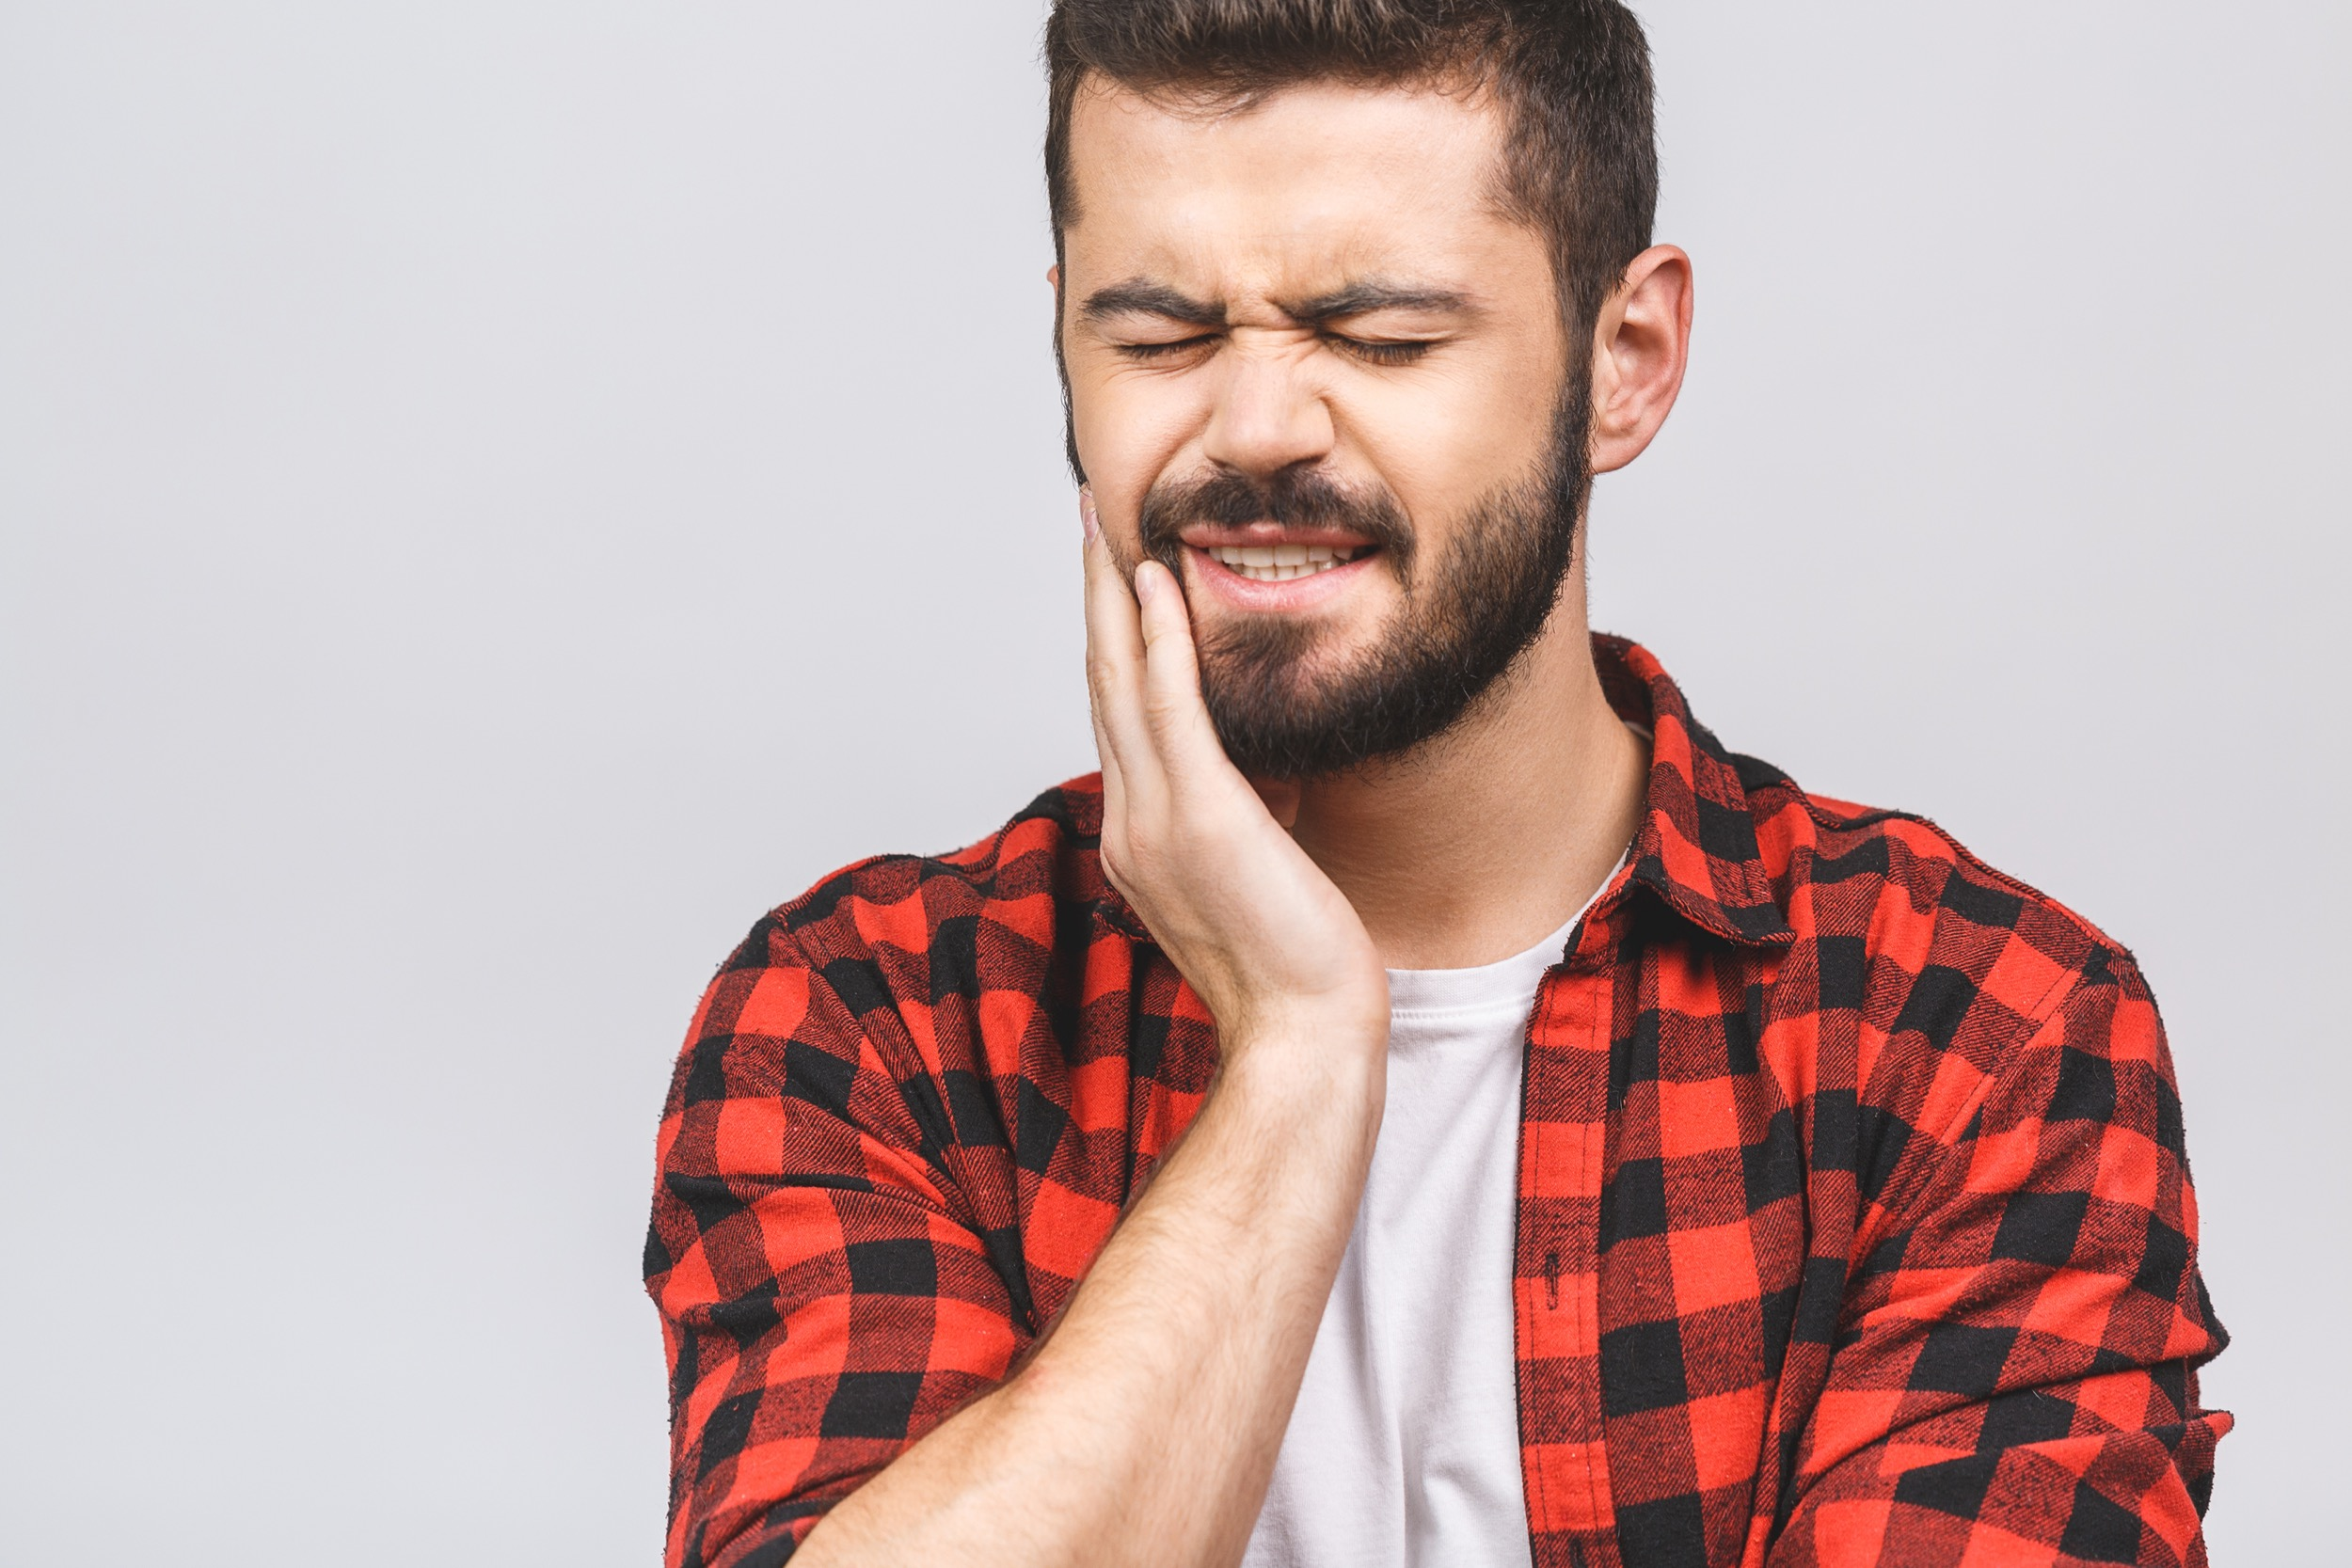 What Does it Mean that I Have an Abscessed Tooth?